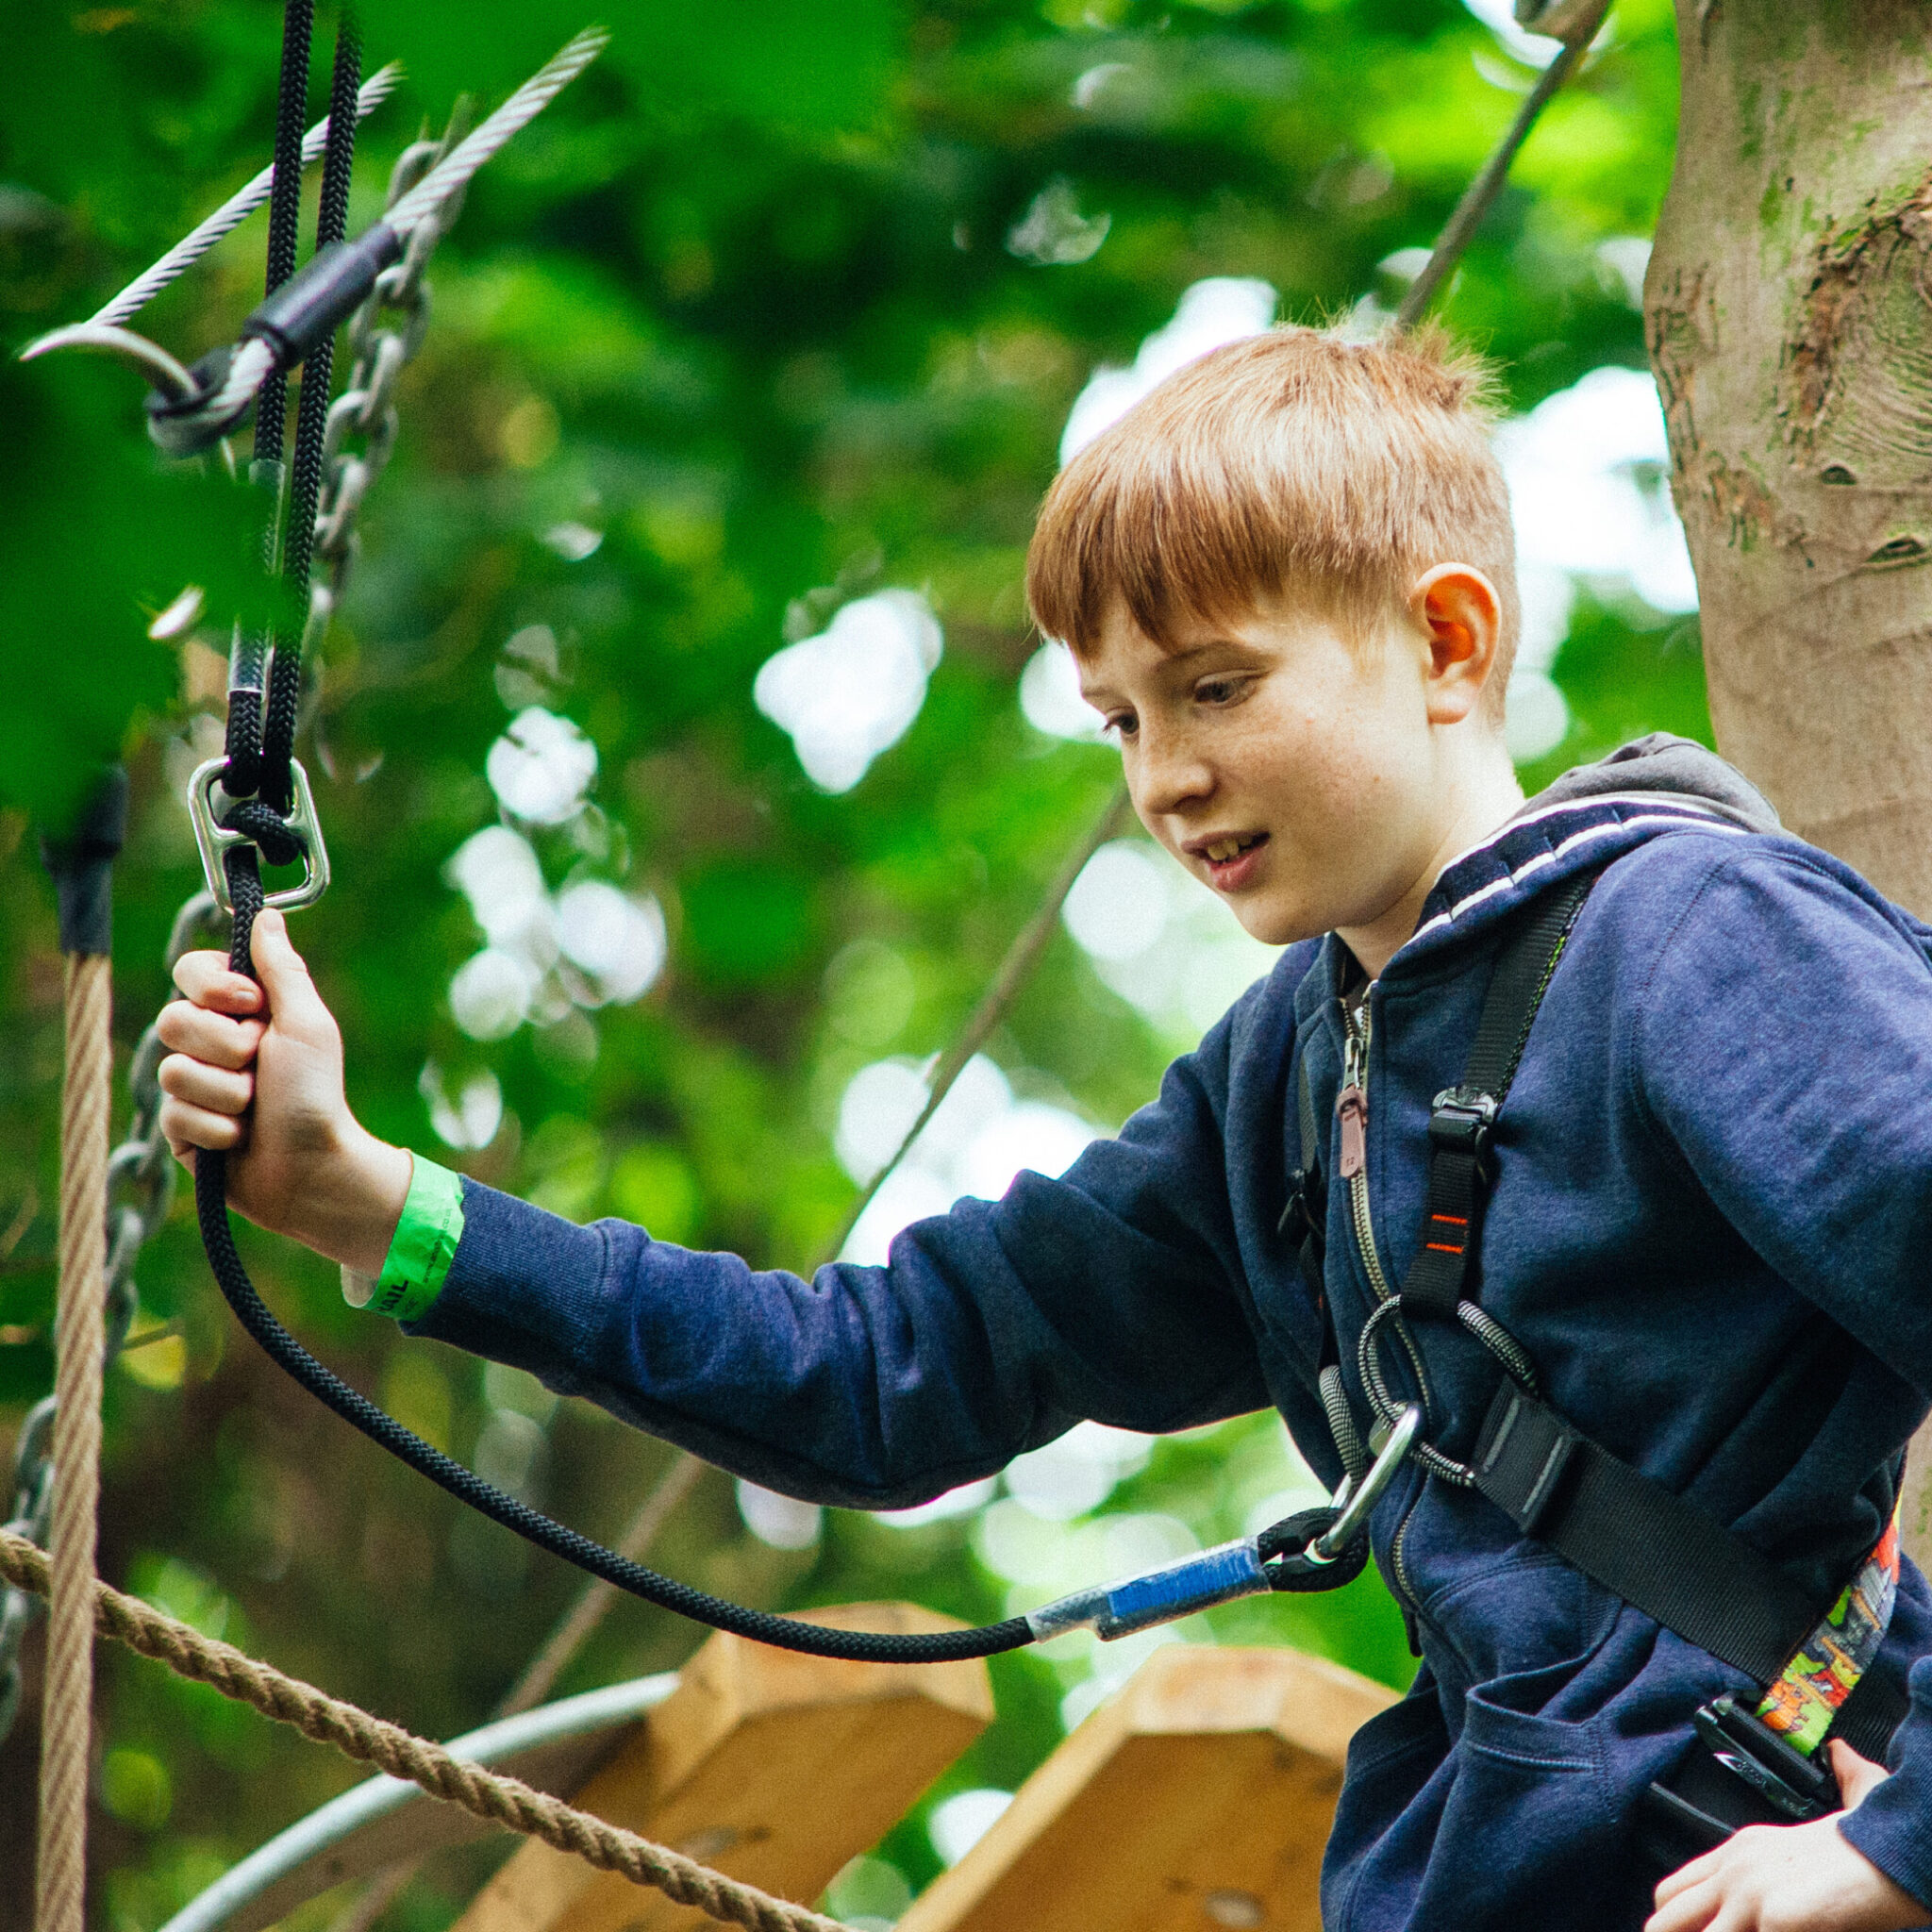 High_Ropes_16_highres-5129